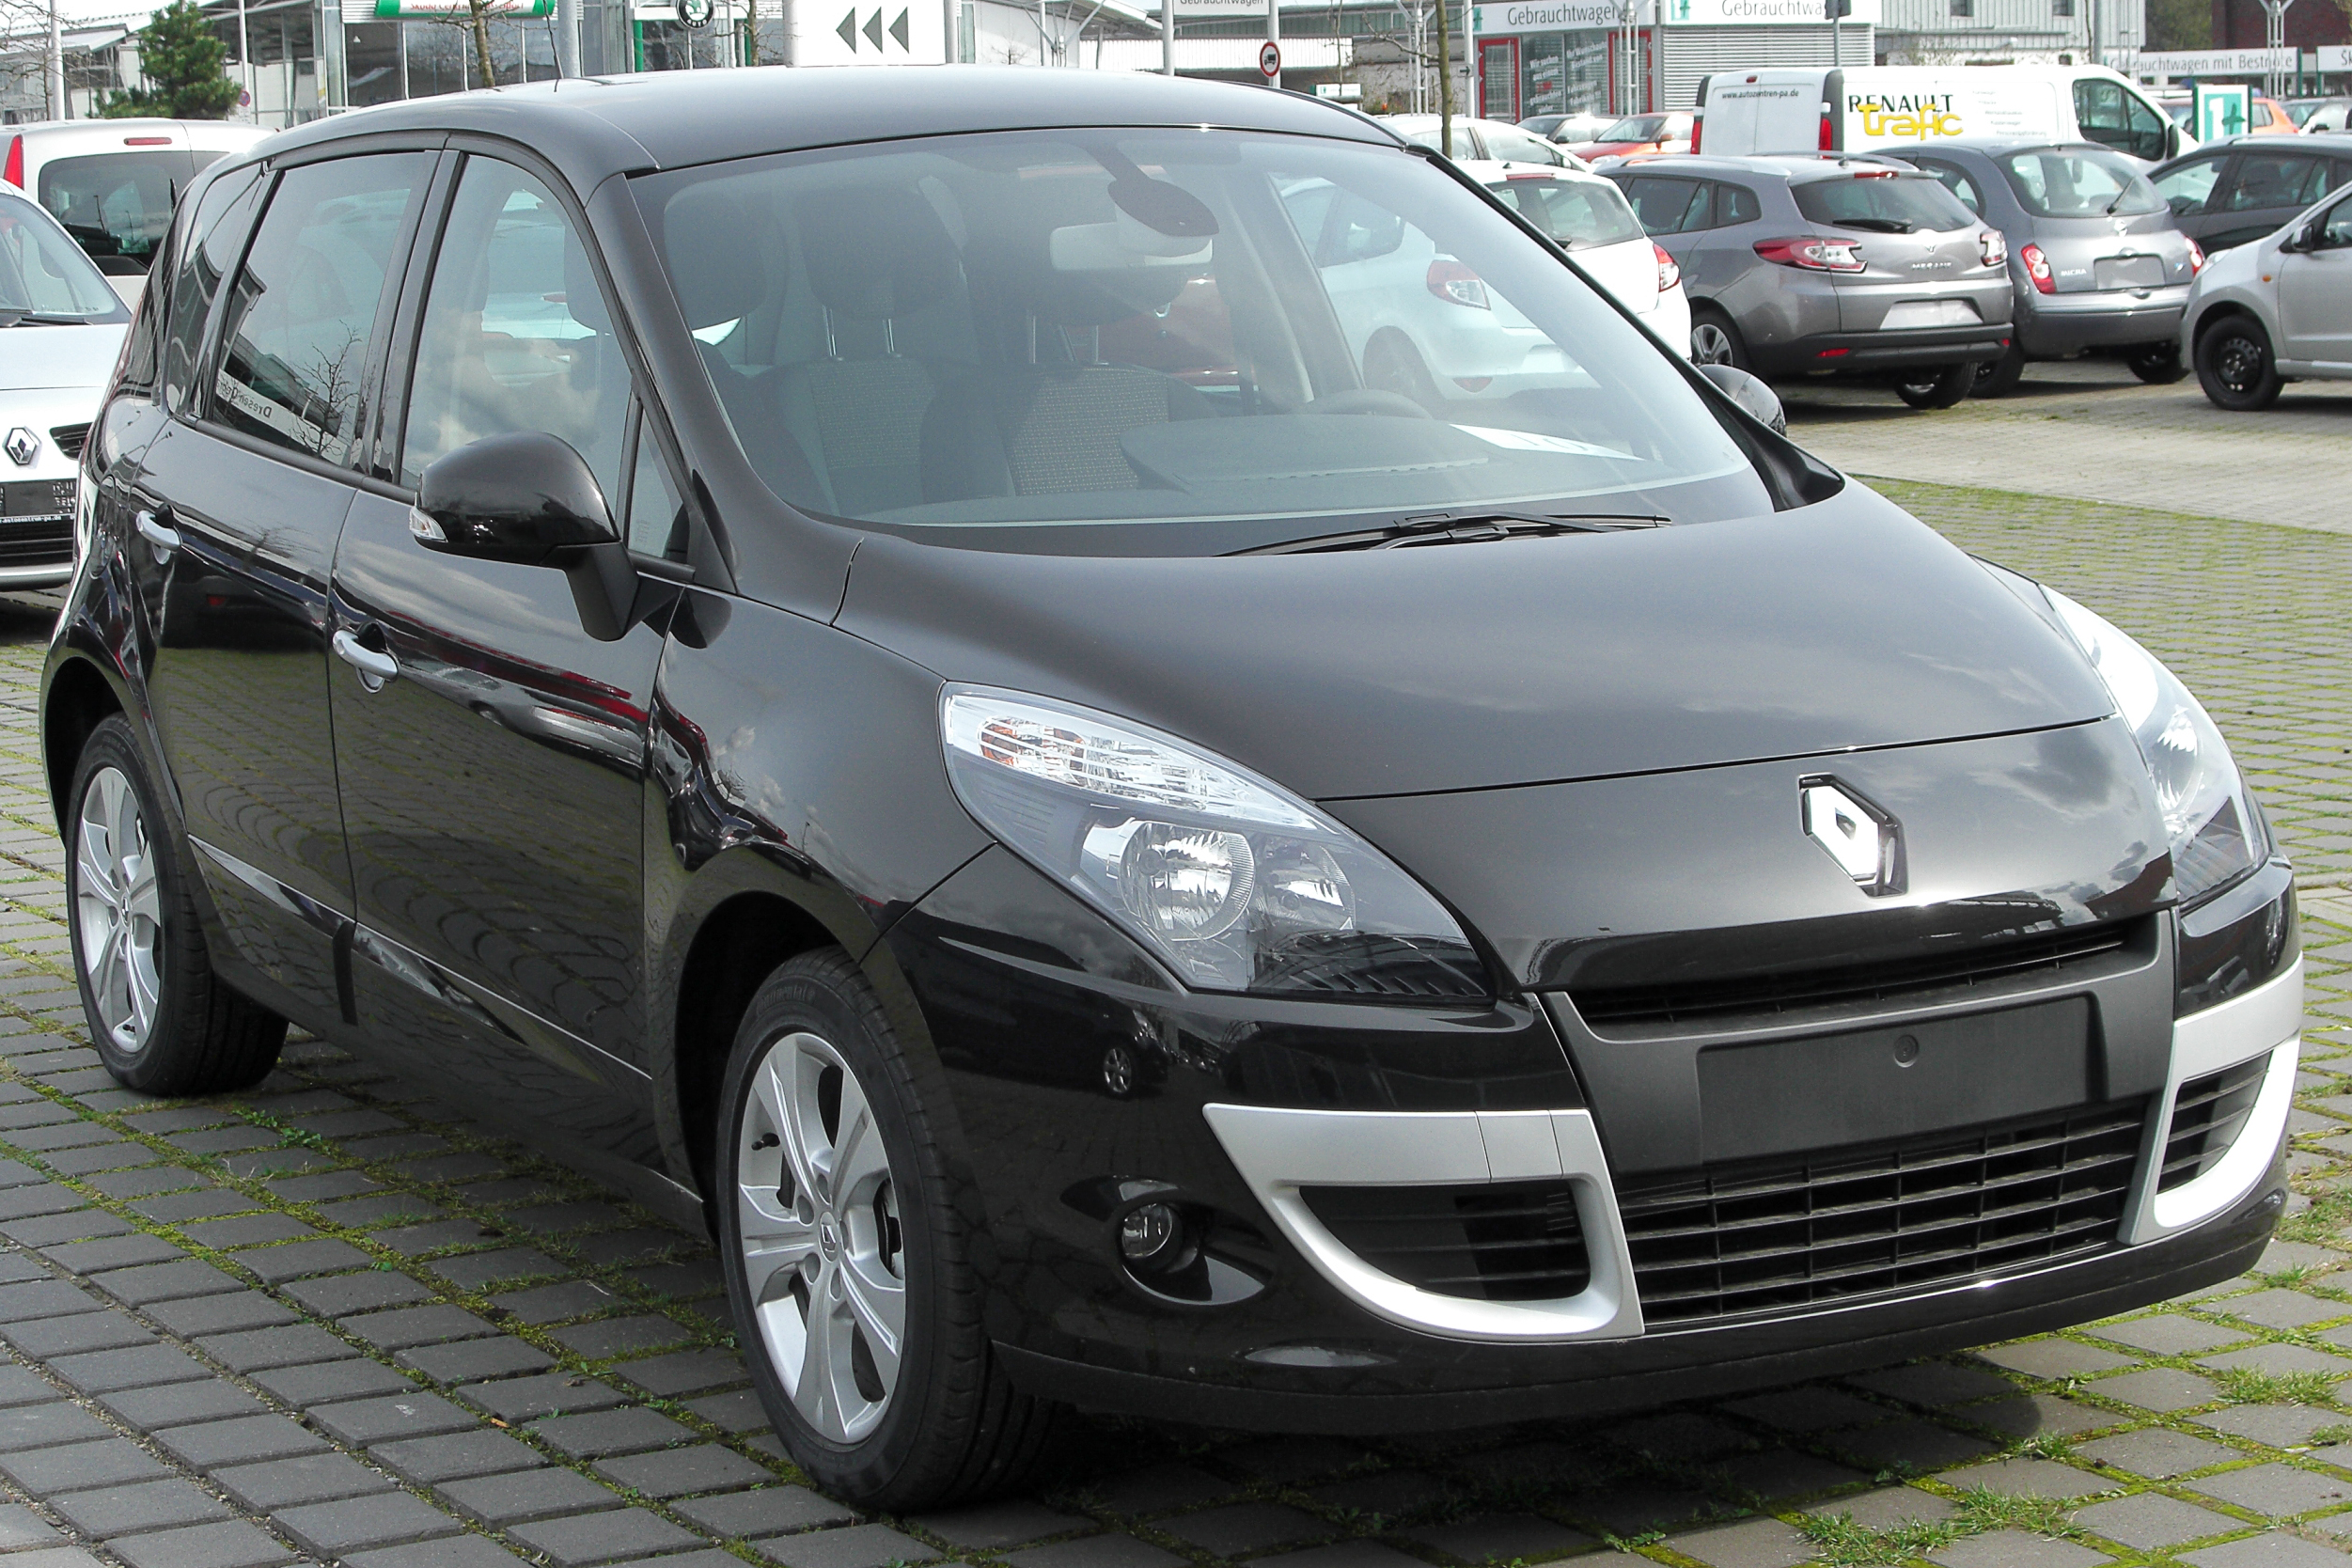 2010 renault scenic iii pictures information and specs. Black Bedroom Furniture Sets. Home Design Ideas